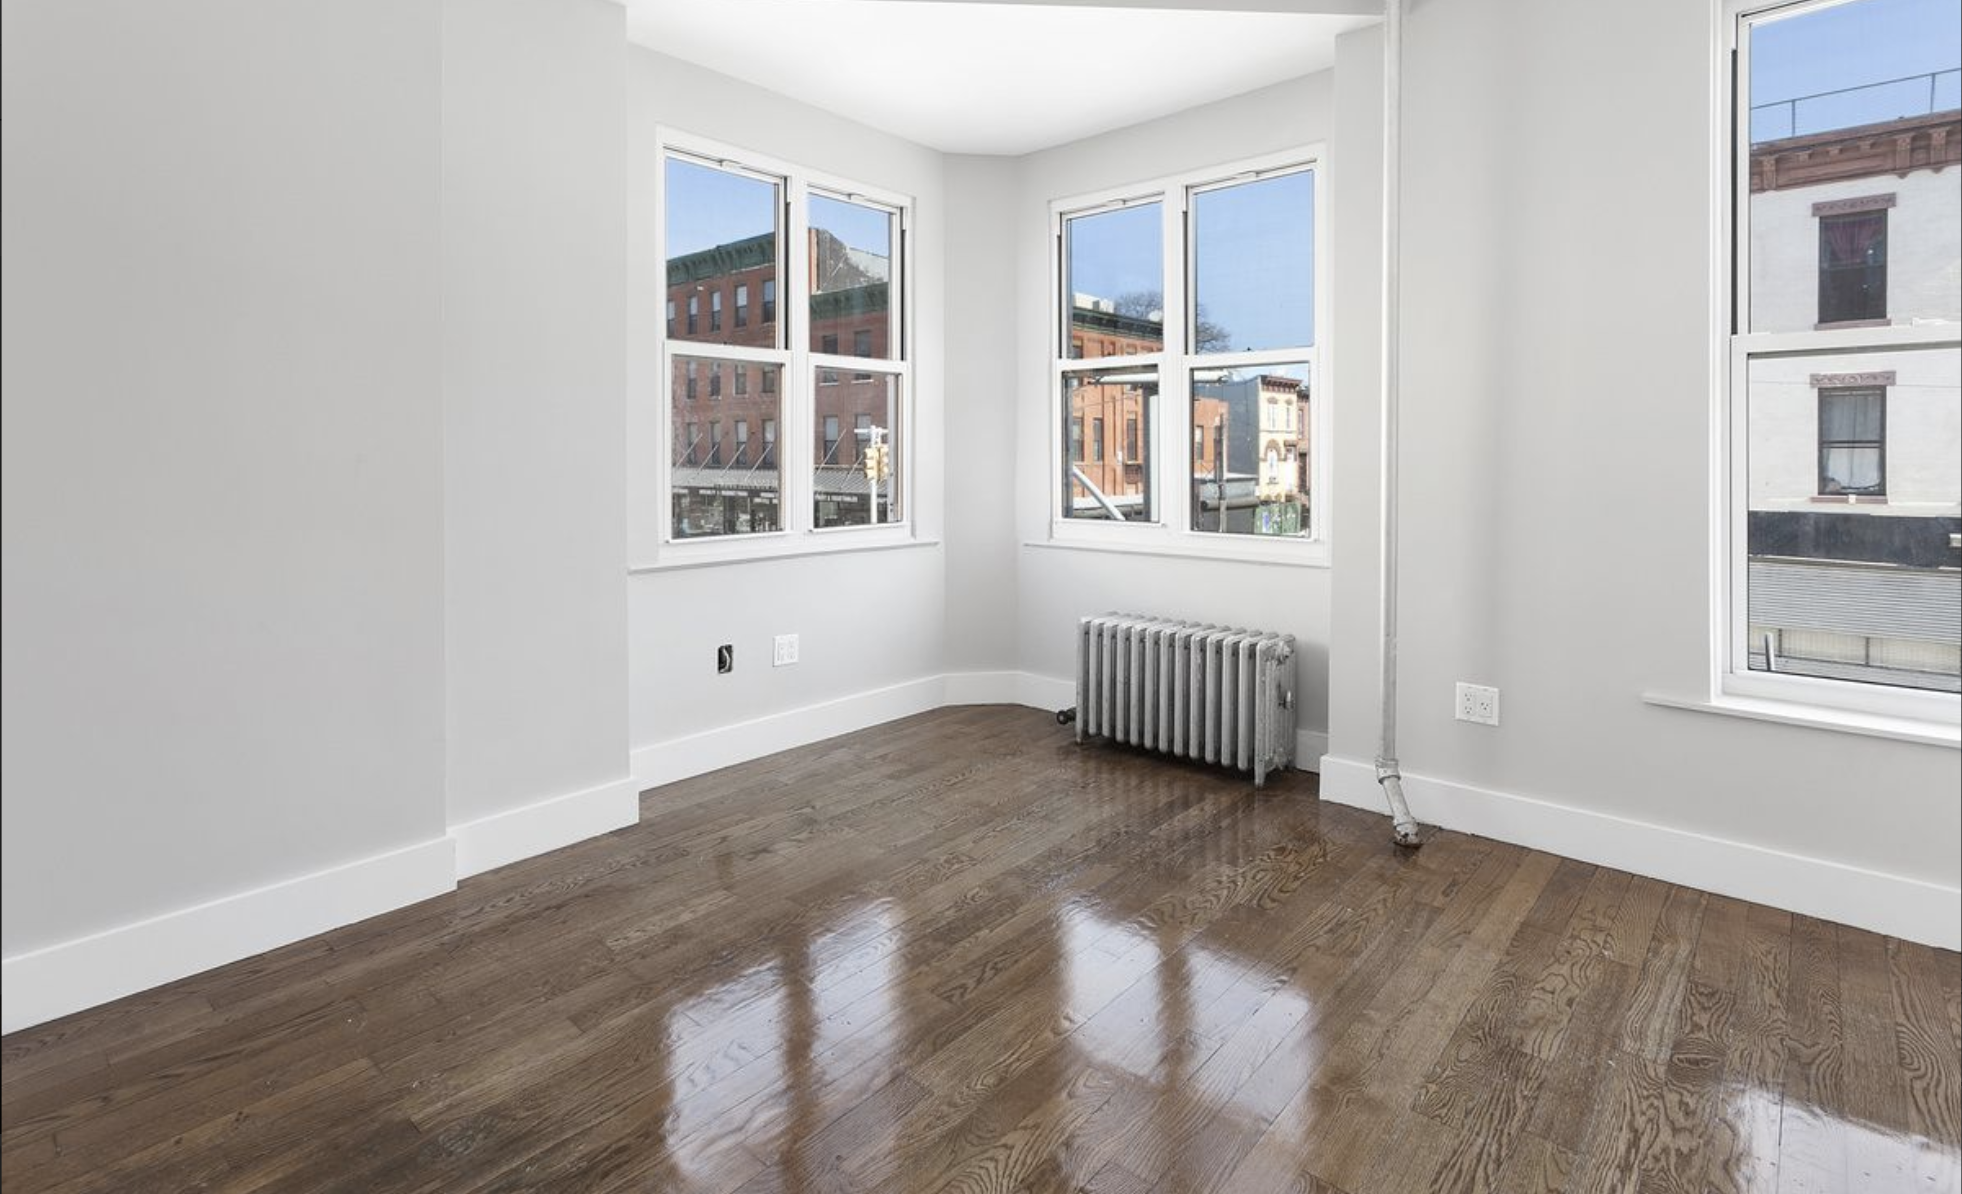 $2,800 | NO FEE 3.0 BD | 1.0 BA | 1,000 SF  Stuyvesant Heights  616 Halsey Street